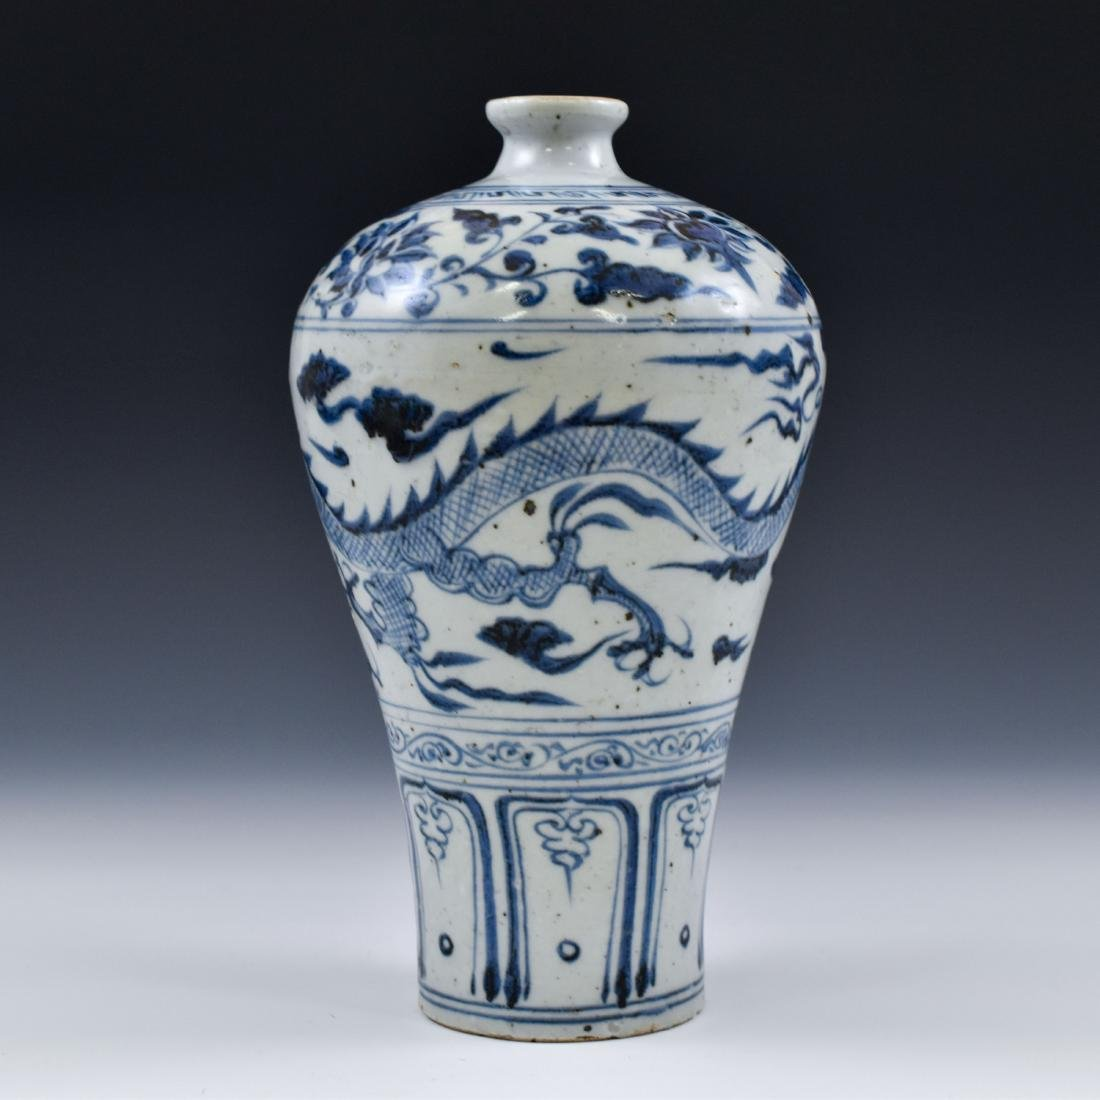 YUAN CHINESE BLUE & WHITE DRAGON MEIPING VASE - 3